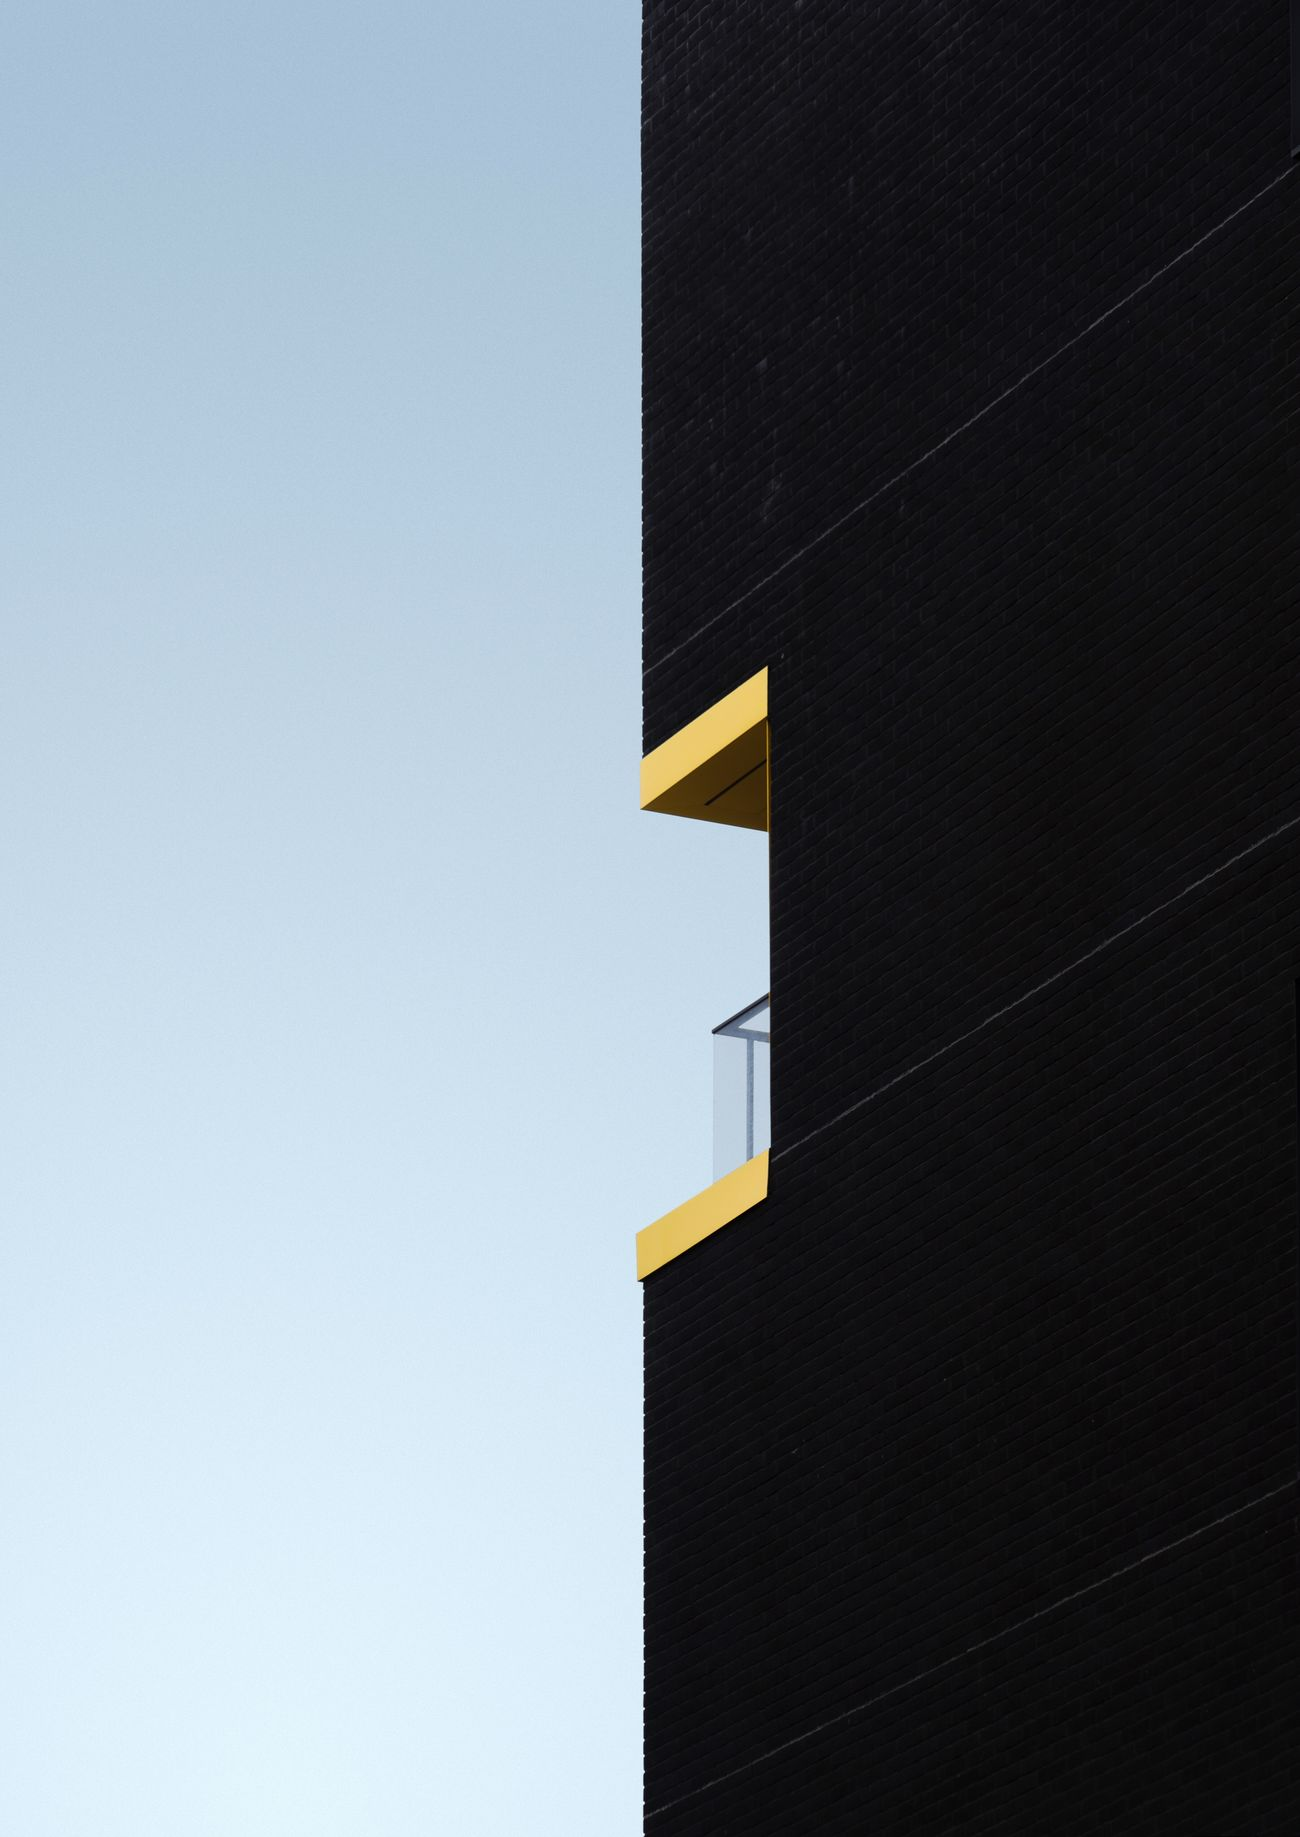 Façade Building The Architect - 2017 EyeEm Awards TheWeekOnEyeEM Angles And Lines Architecture Lines And Shapes Architecture_collection EyeEmBestPics EyeEm Best Edits EyeEm Best Shots Architecturelovers Angles And Views Contrast 50/50 Fiftyfifty Minimalism Minimal Minimalist Architecture Balcony